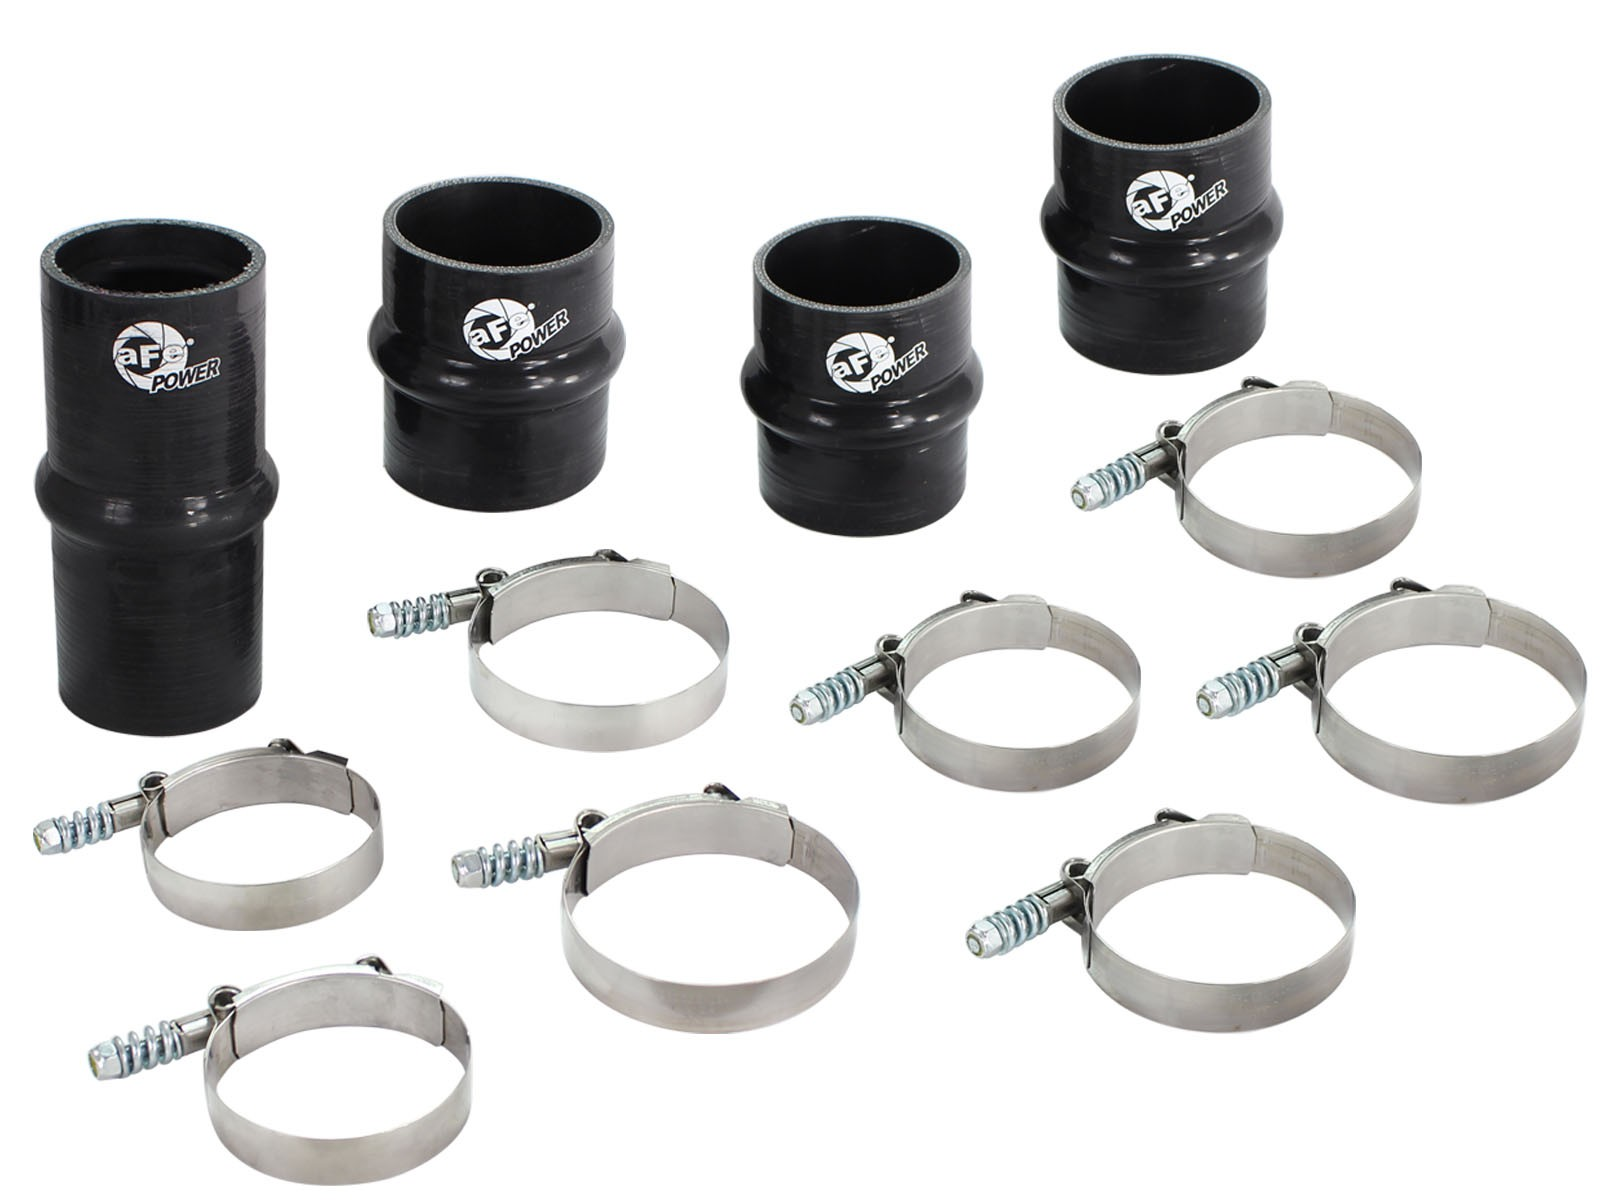 aFe POWER 46-20010 BladeRunner Intercooler Couplings & Clamps Kit; aFe & Factory Replacement